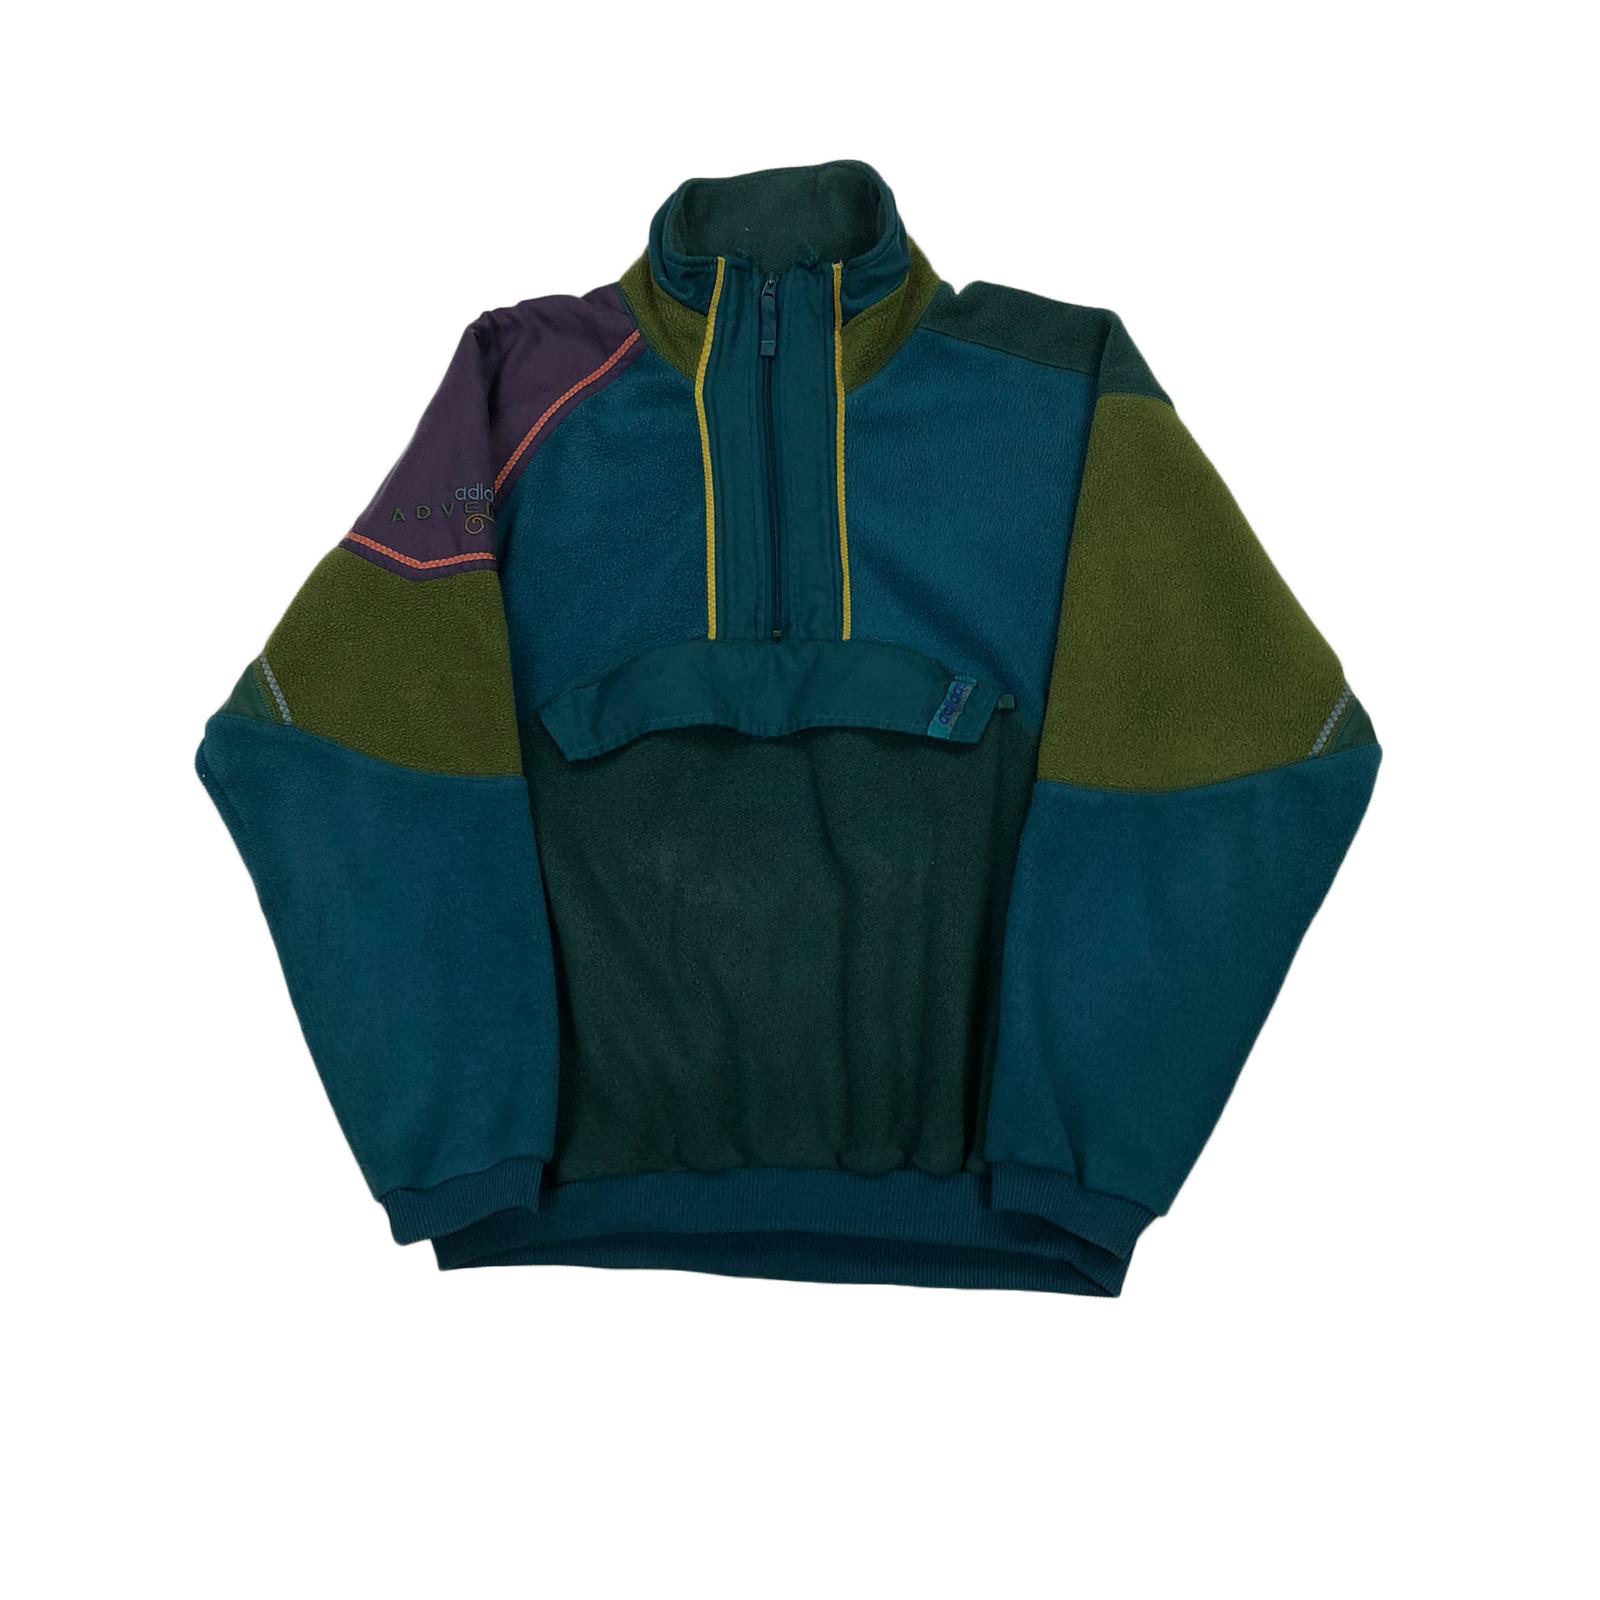 90's Adidas Adventure fleece